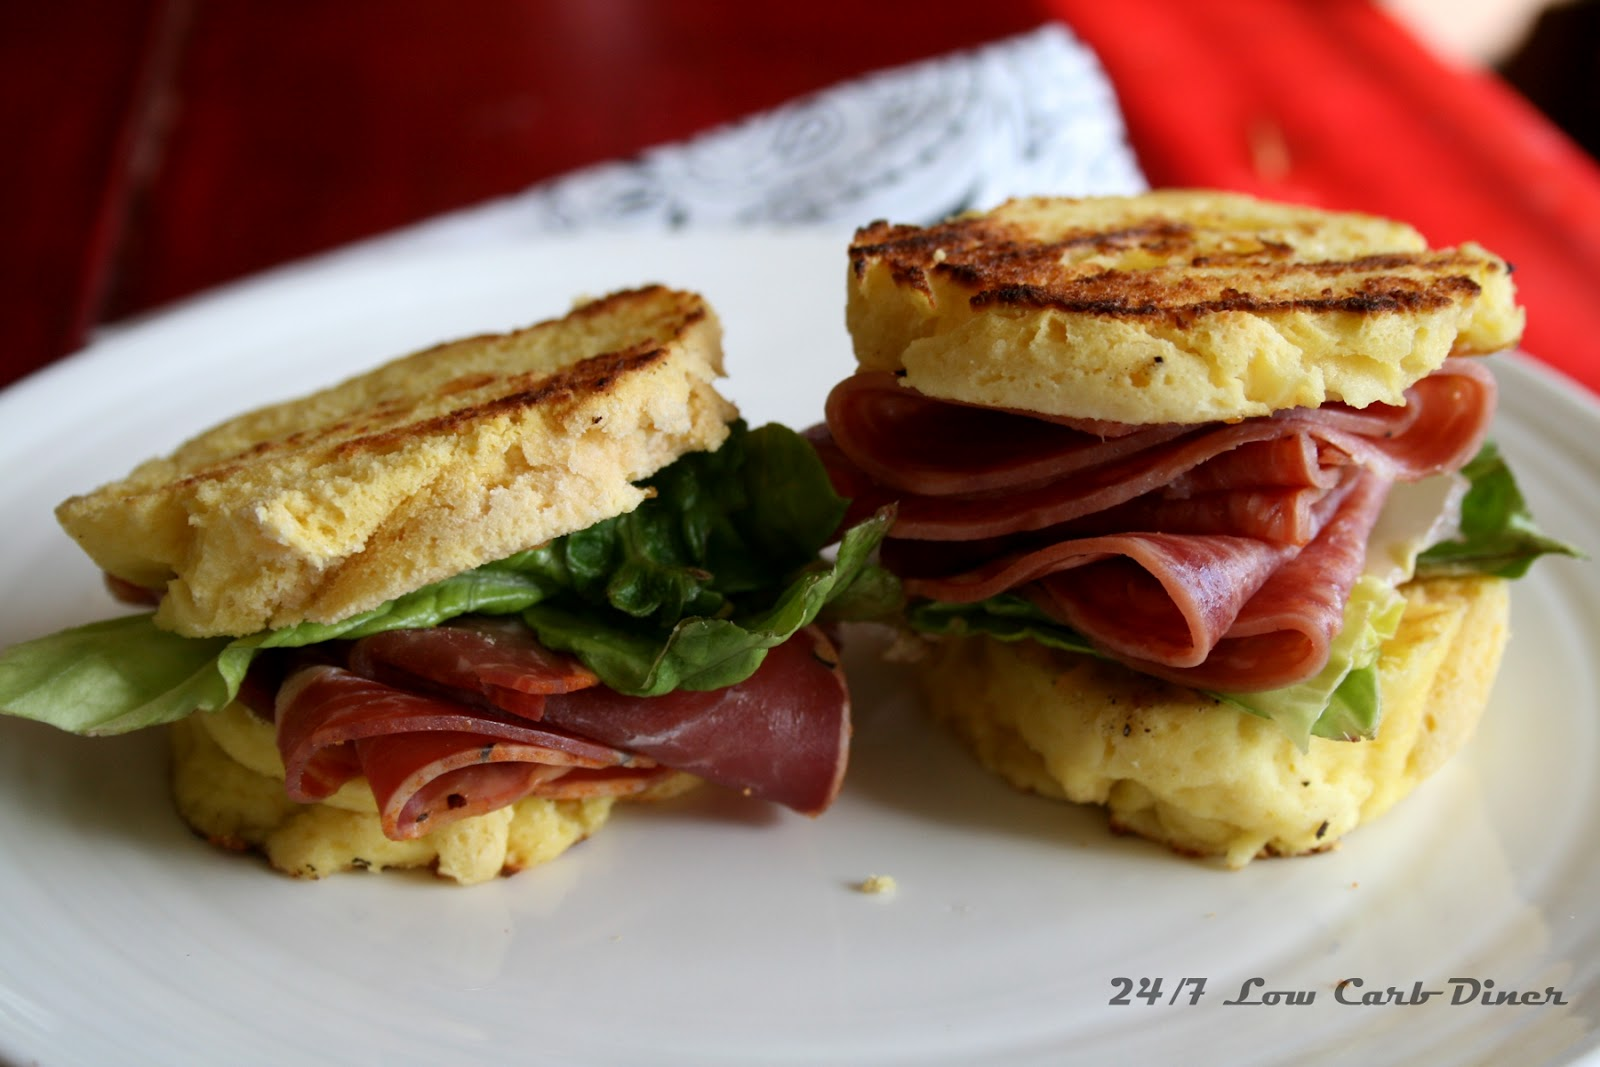 low carb diner piccolo panini italian sliders piccolo panini italian sliders